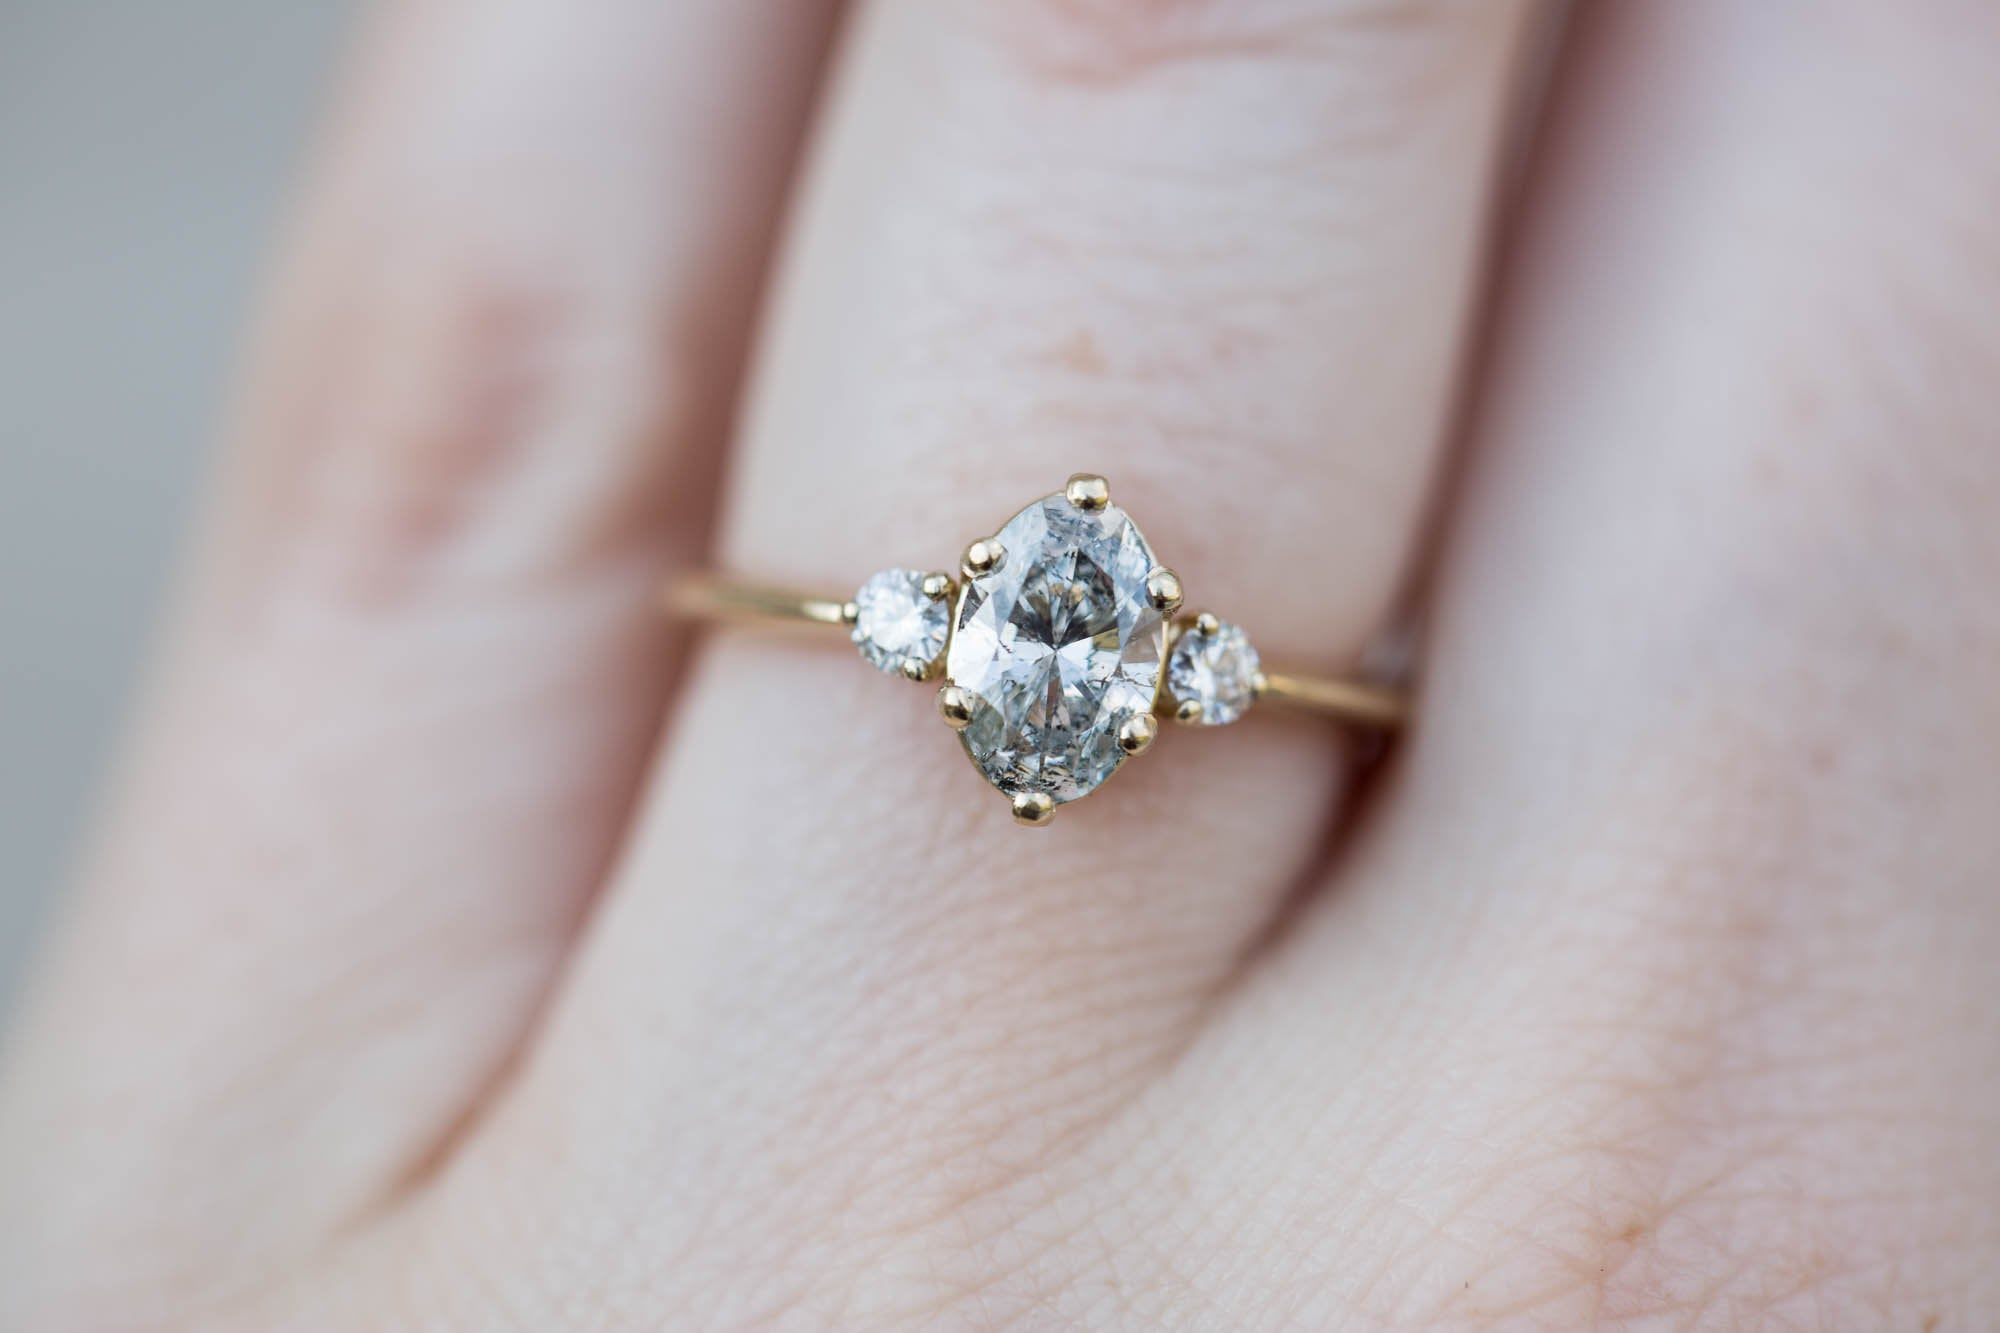 Elongated oval salt and pepper diamond engagement ring